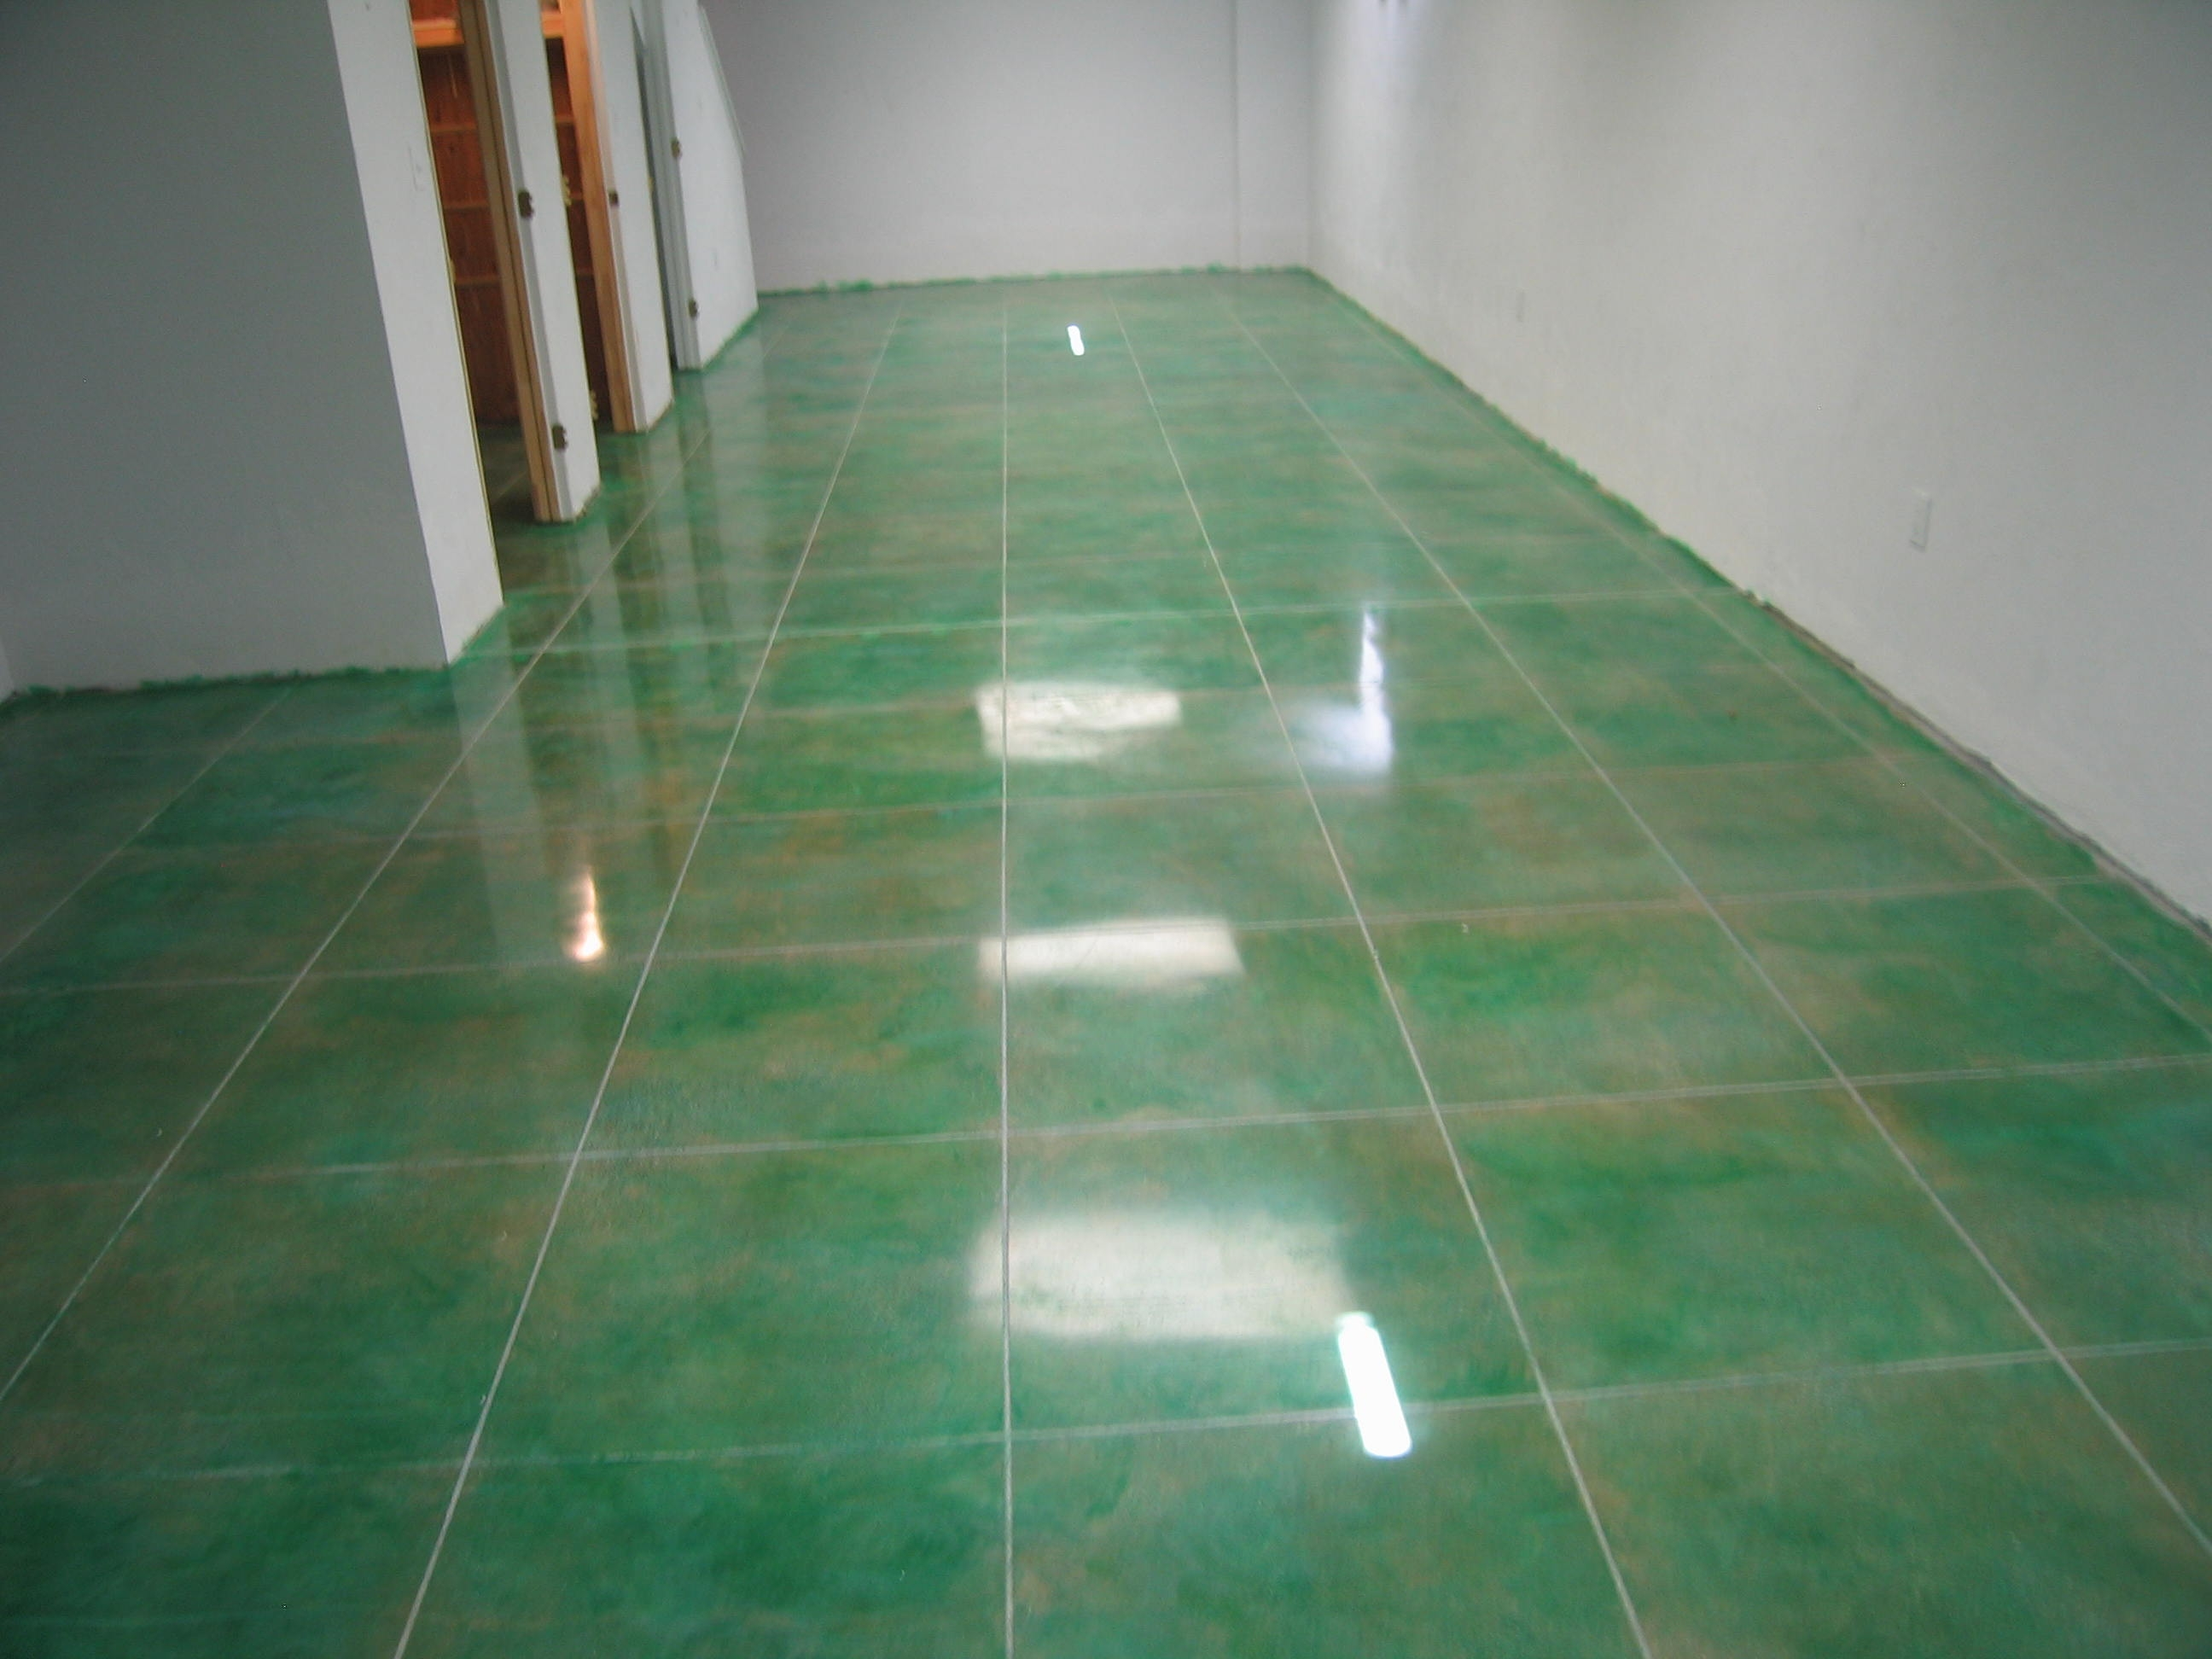 faux grout lines or virtually any design or pattern can be cut into a polished  concrete floor ...